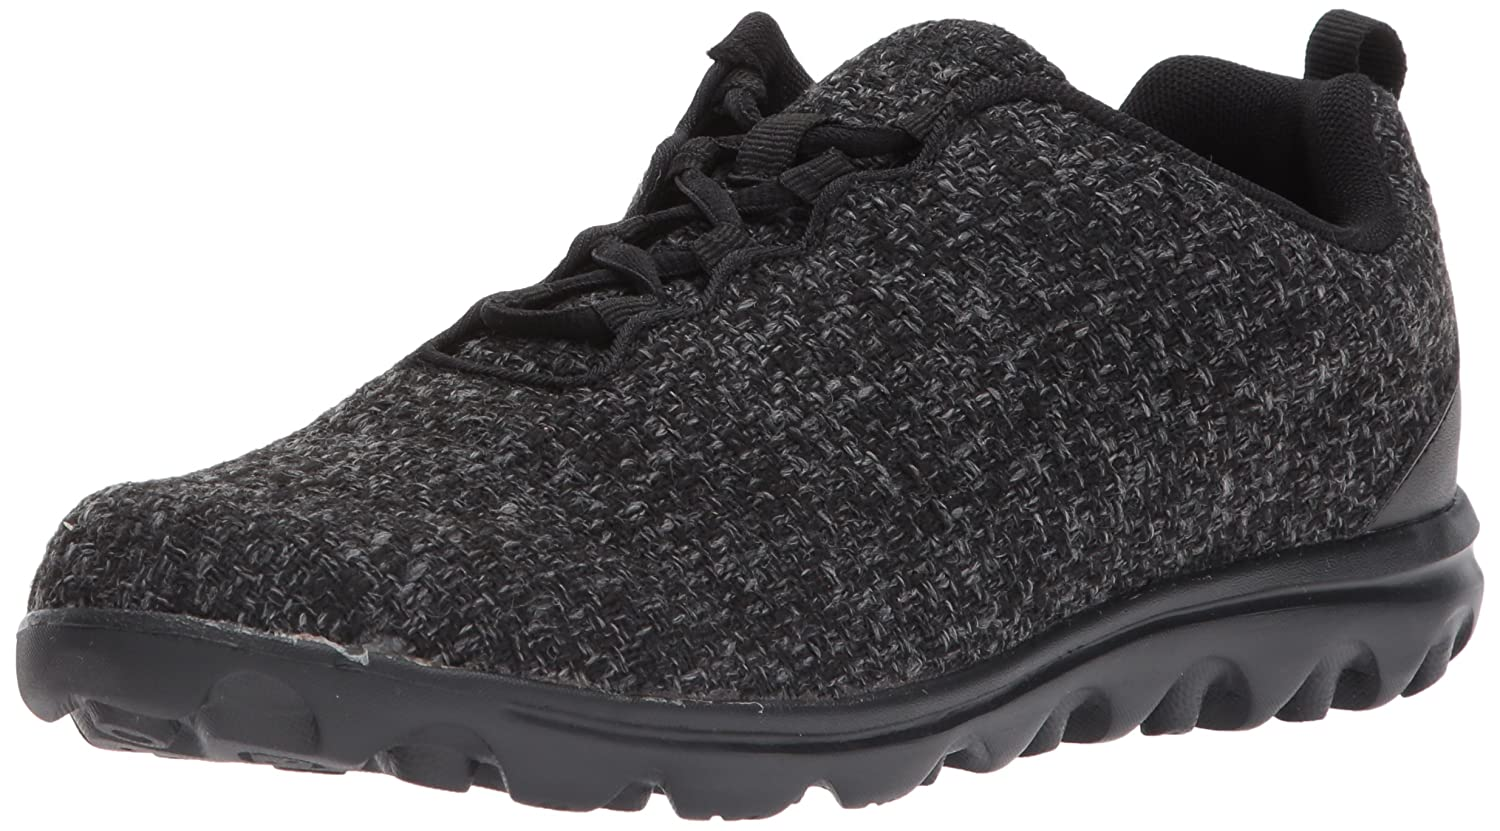 Propet Women's TravelActiv Woven Walking Shoe B01NBF59AJ 11 W US|Dark Grey